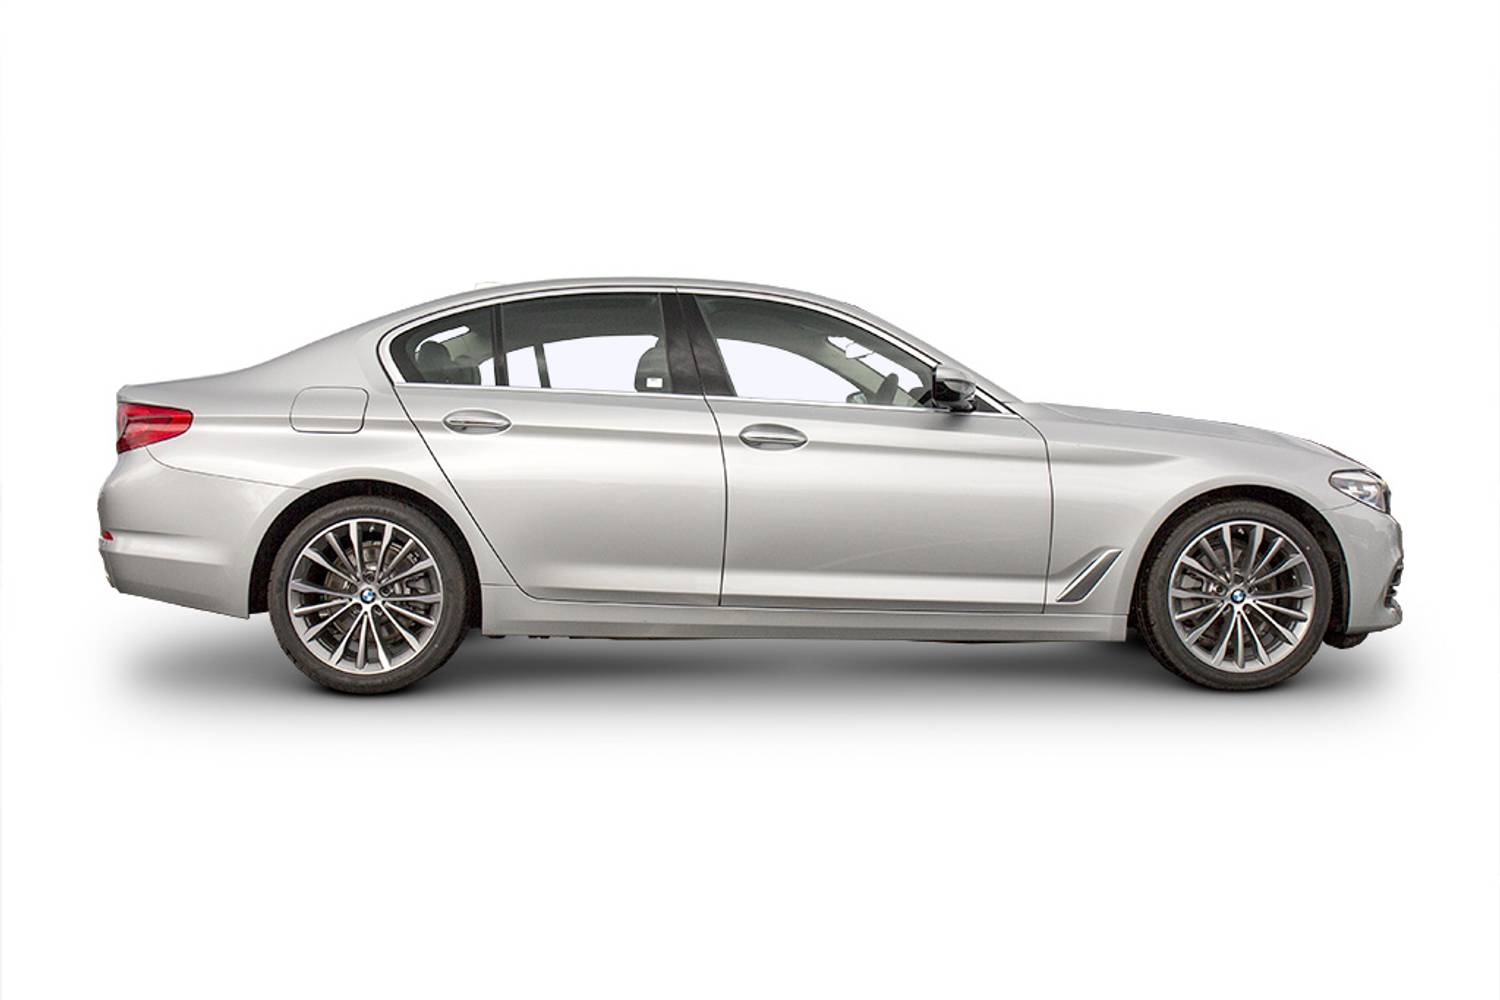 BMW 5 Series Saloon 4dr Profile